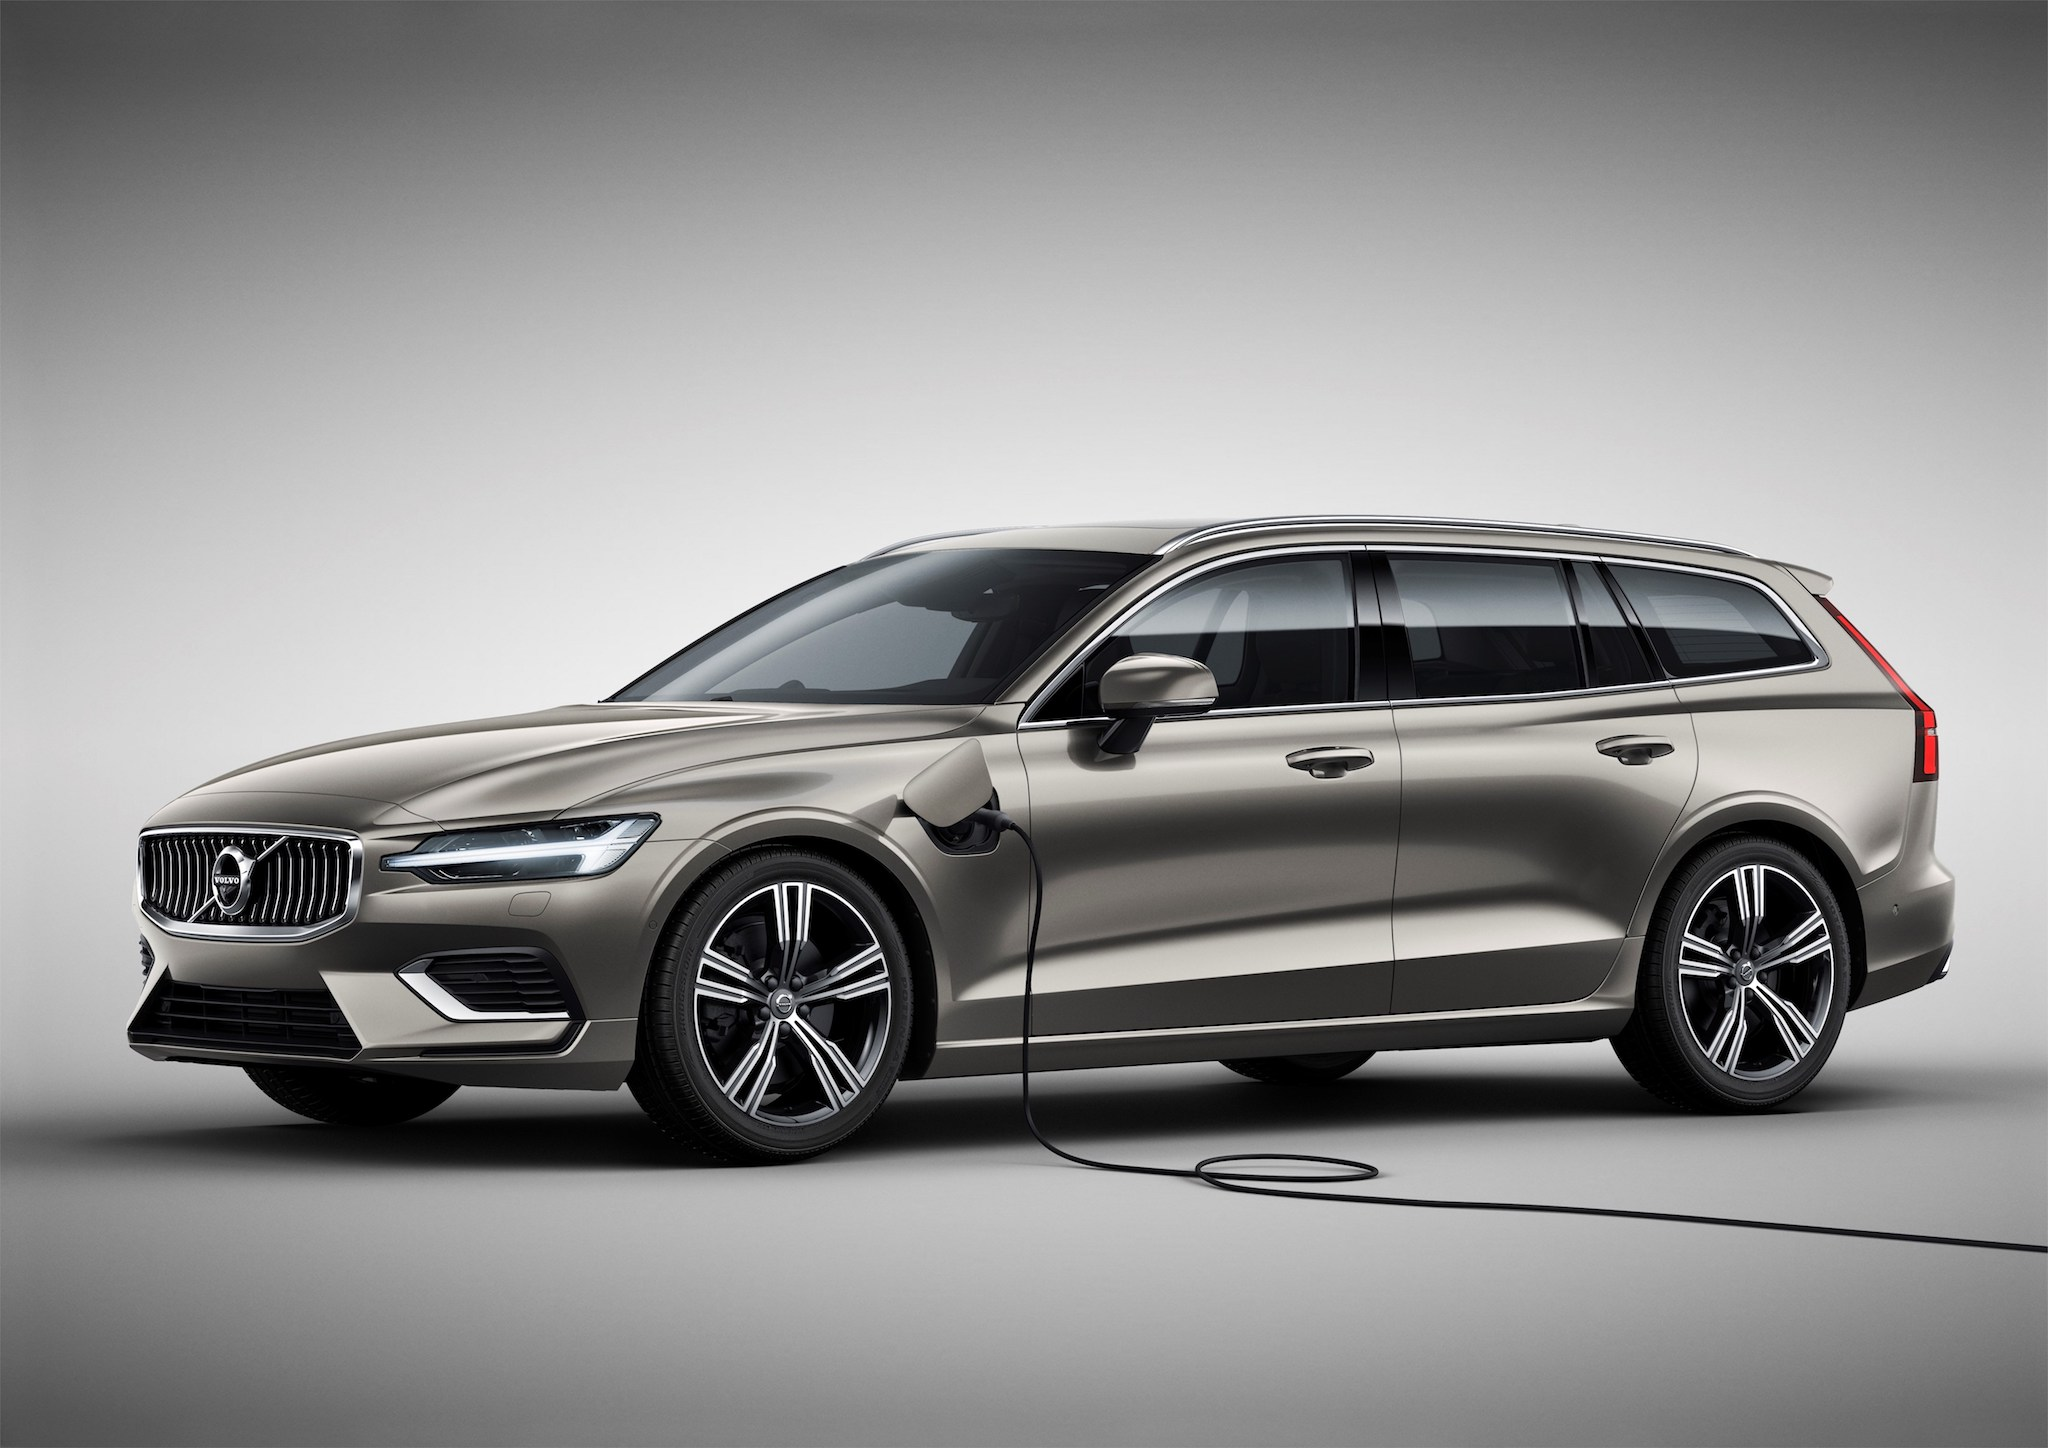 the stunning new volvo v60 proves sweden still knows station wagons ars technica. Black Bedroom Furniture Sets. Home Design Ideas